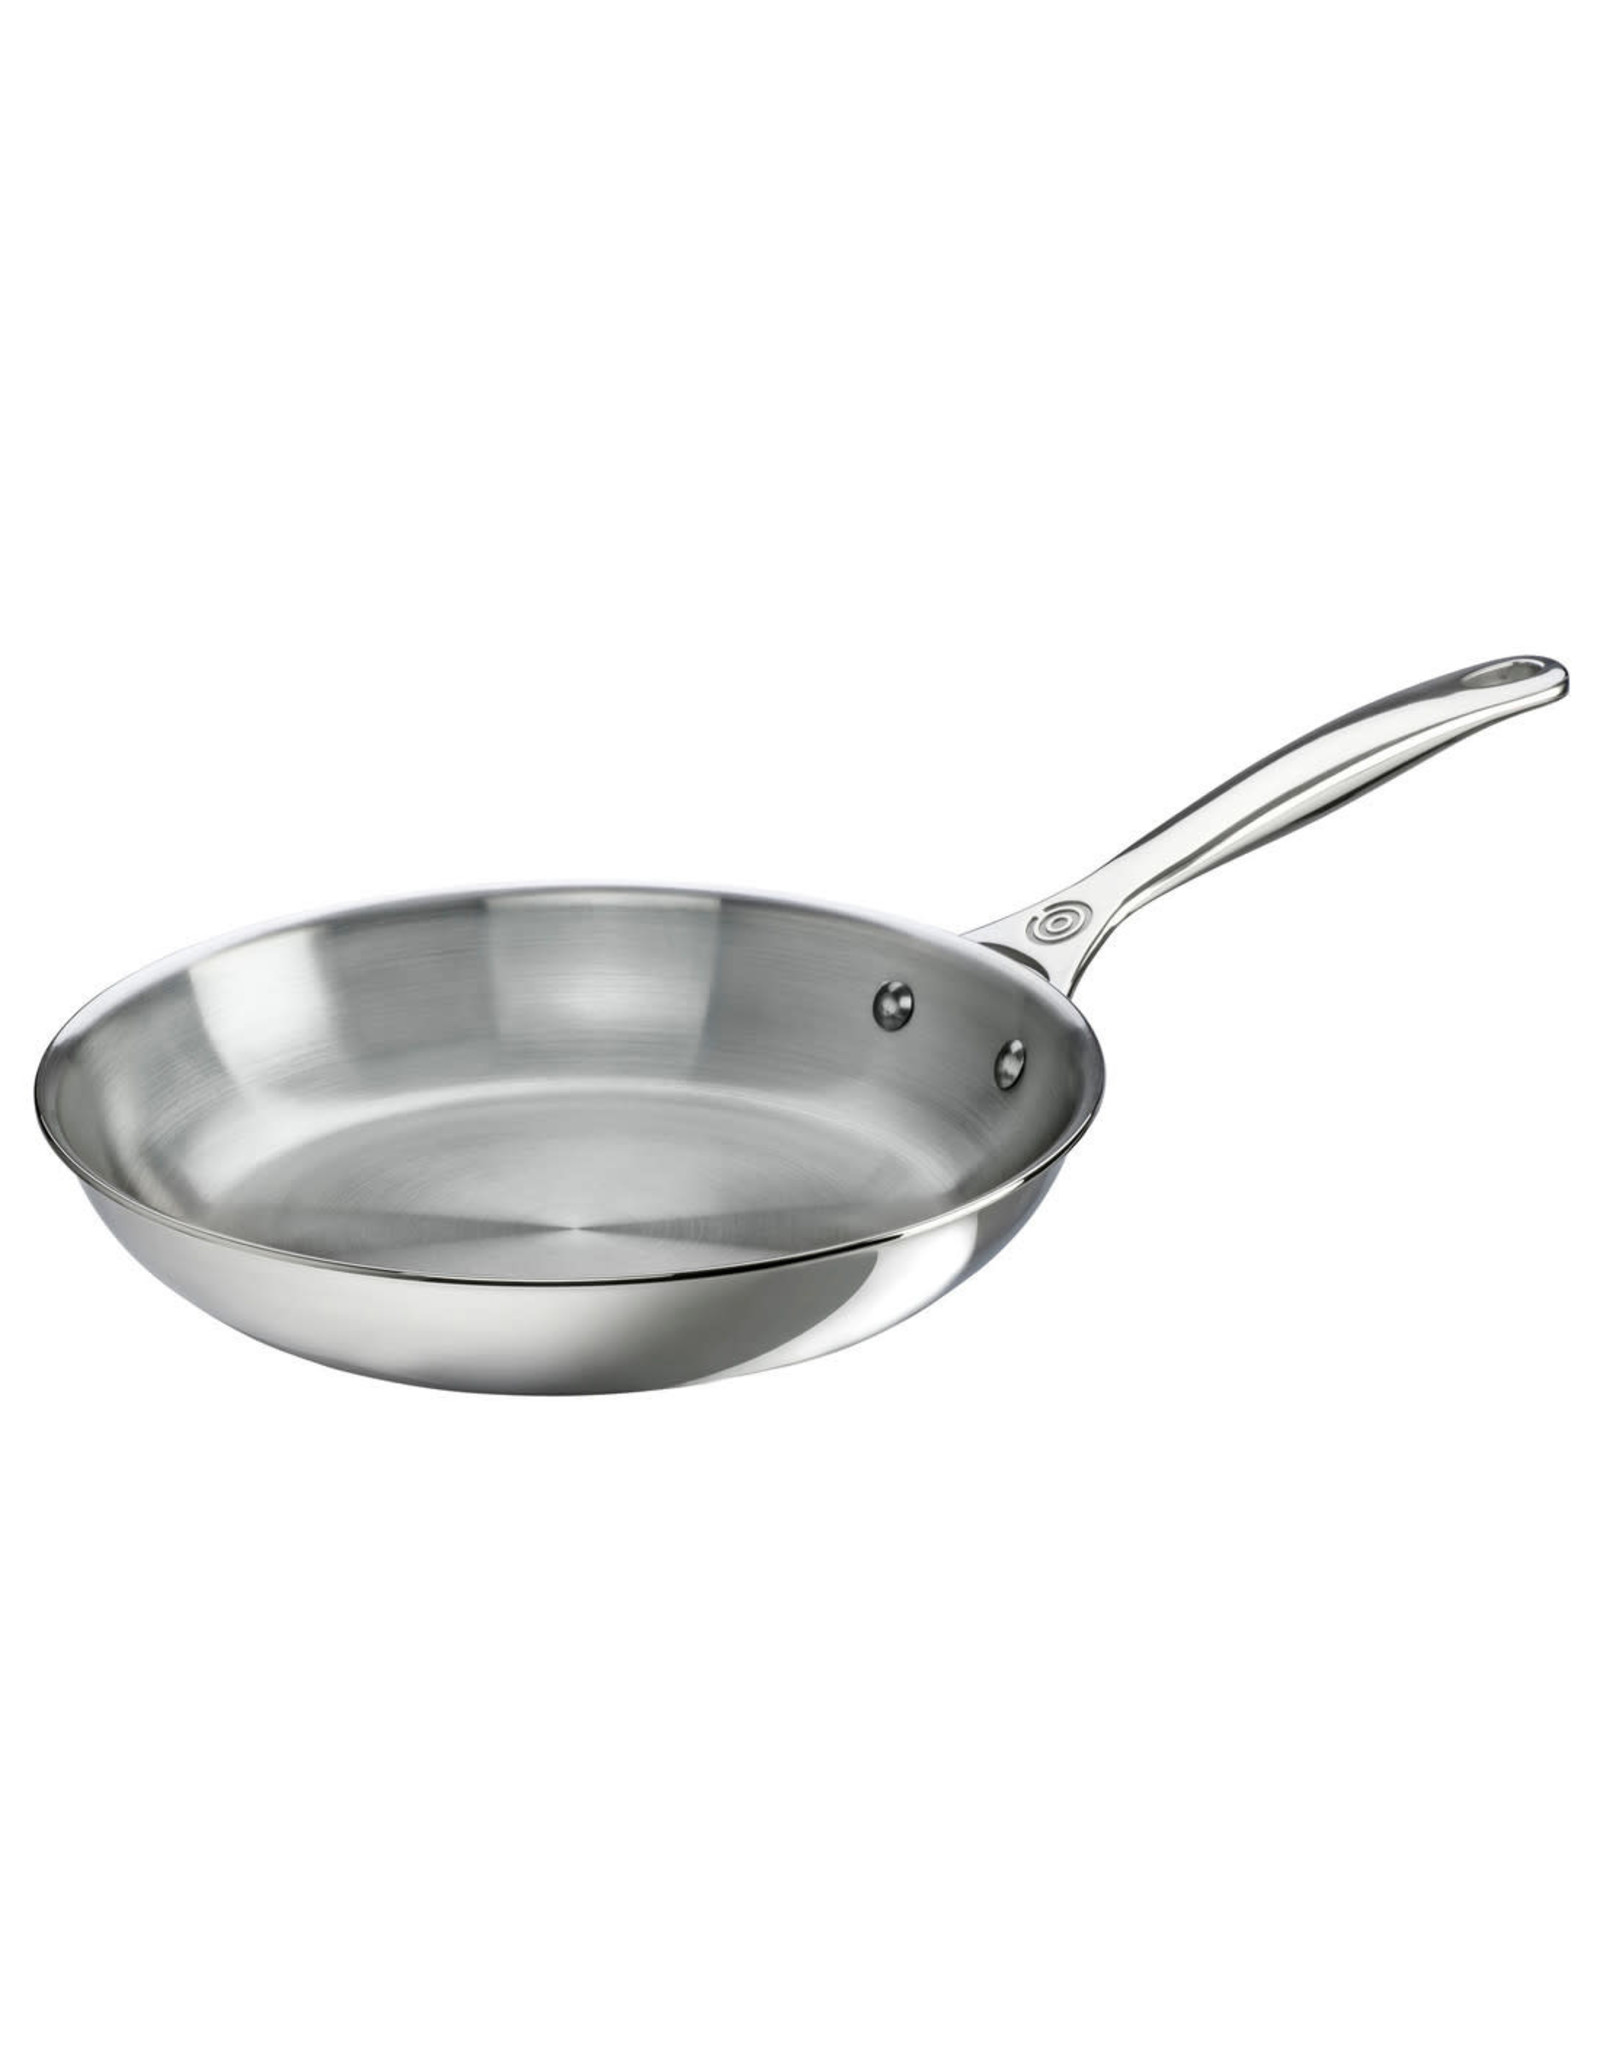 """Le Creuset Le Creuset 8"""" Stainless Steel Fry Pan"""